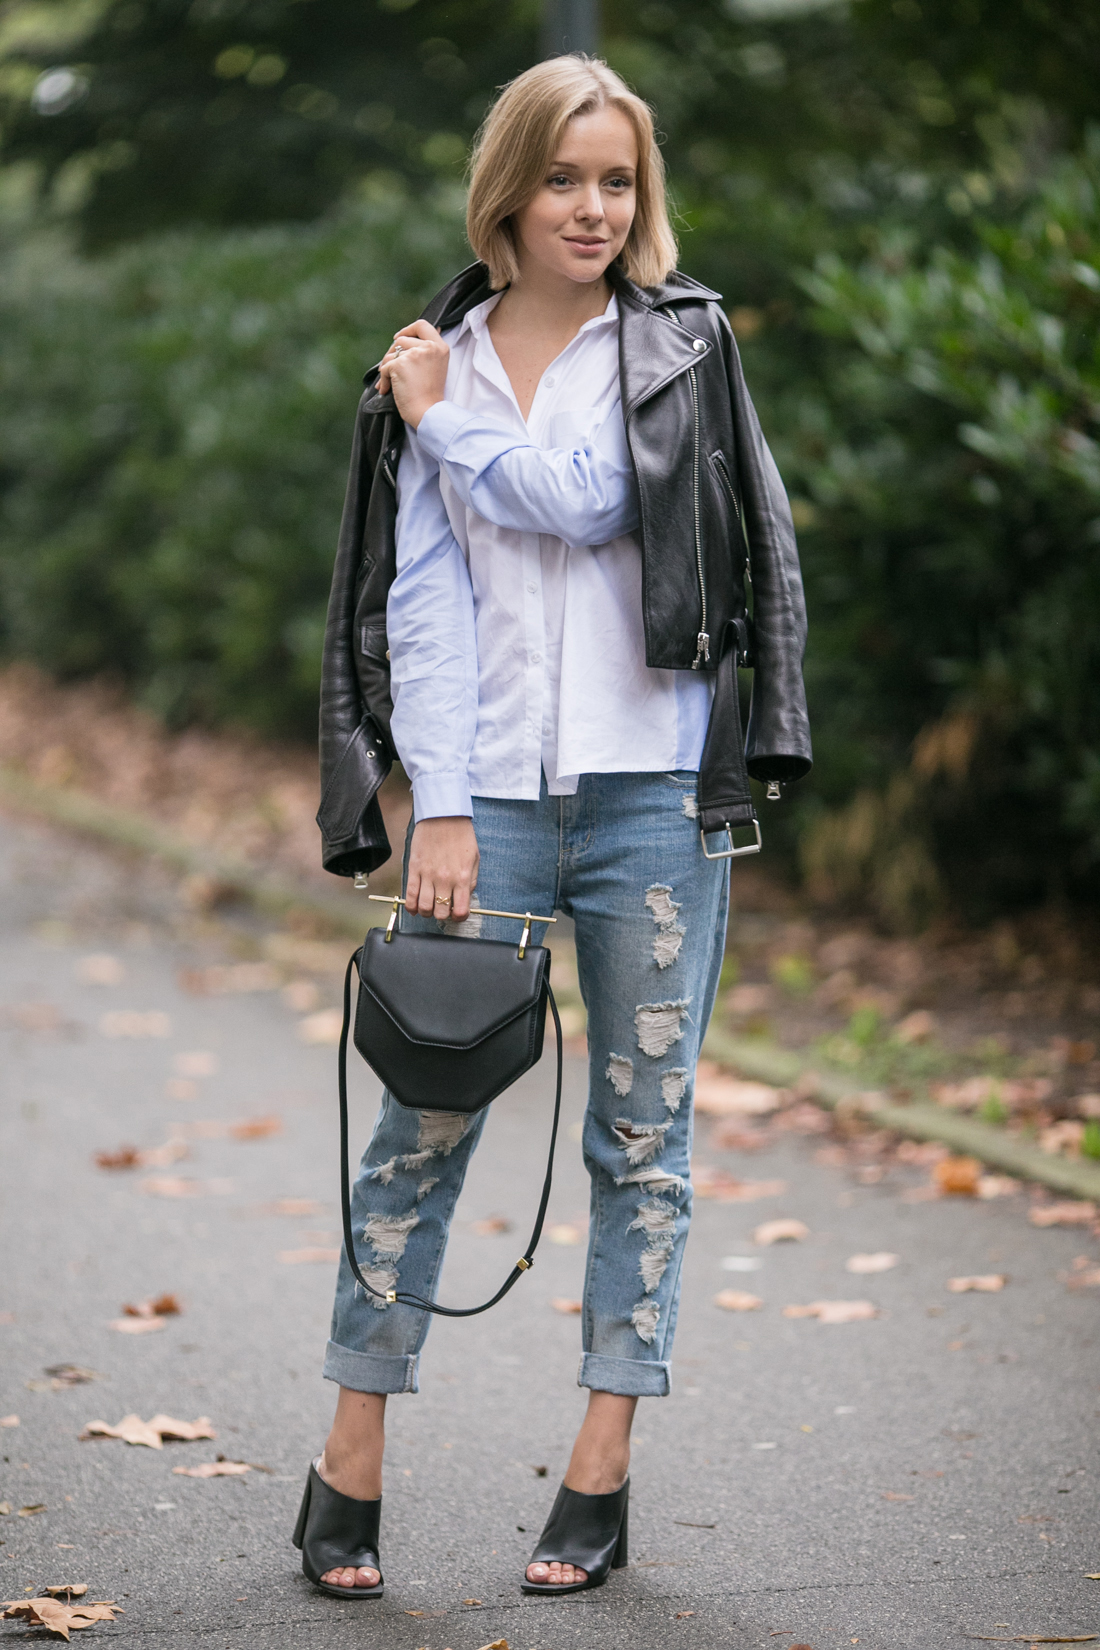 darya kamalova thecablook russian fashion lifestyle blogger in italy outfit spring acne mape leather jacket with boyfriend ripped jeans mules ans m2malletier black bag-7